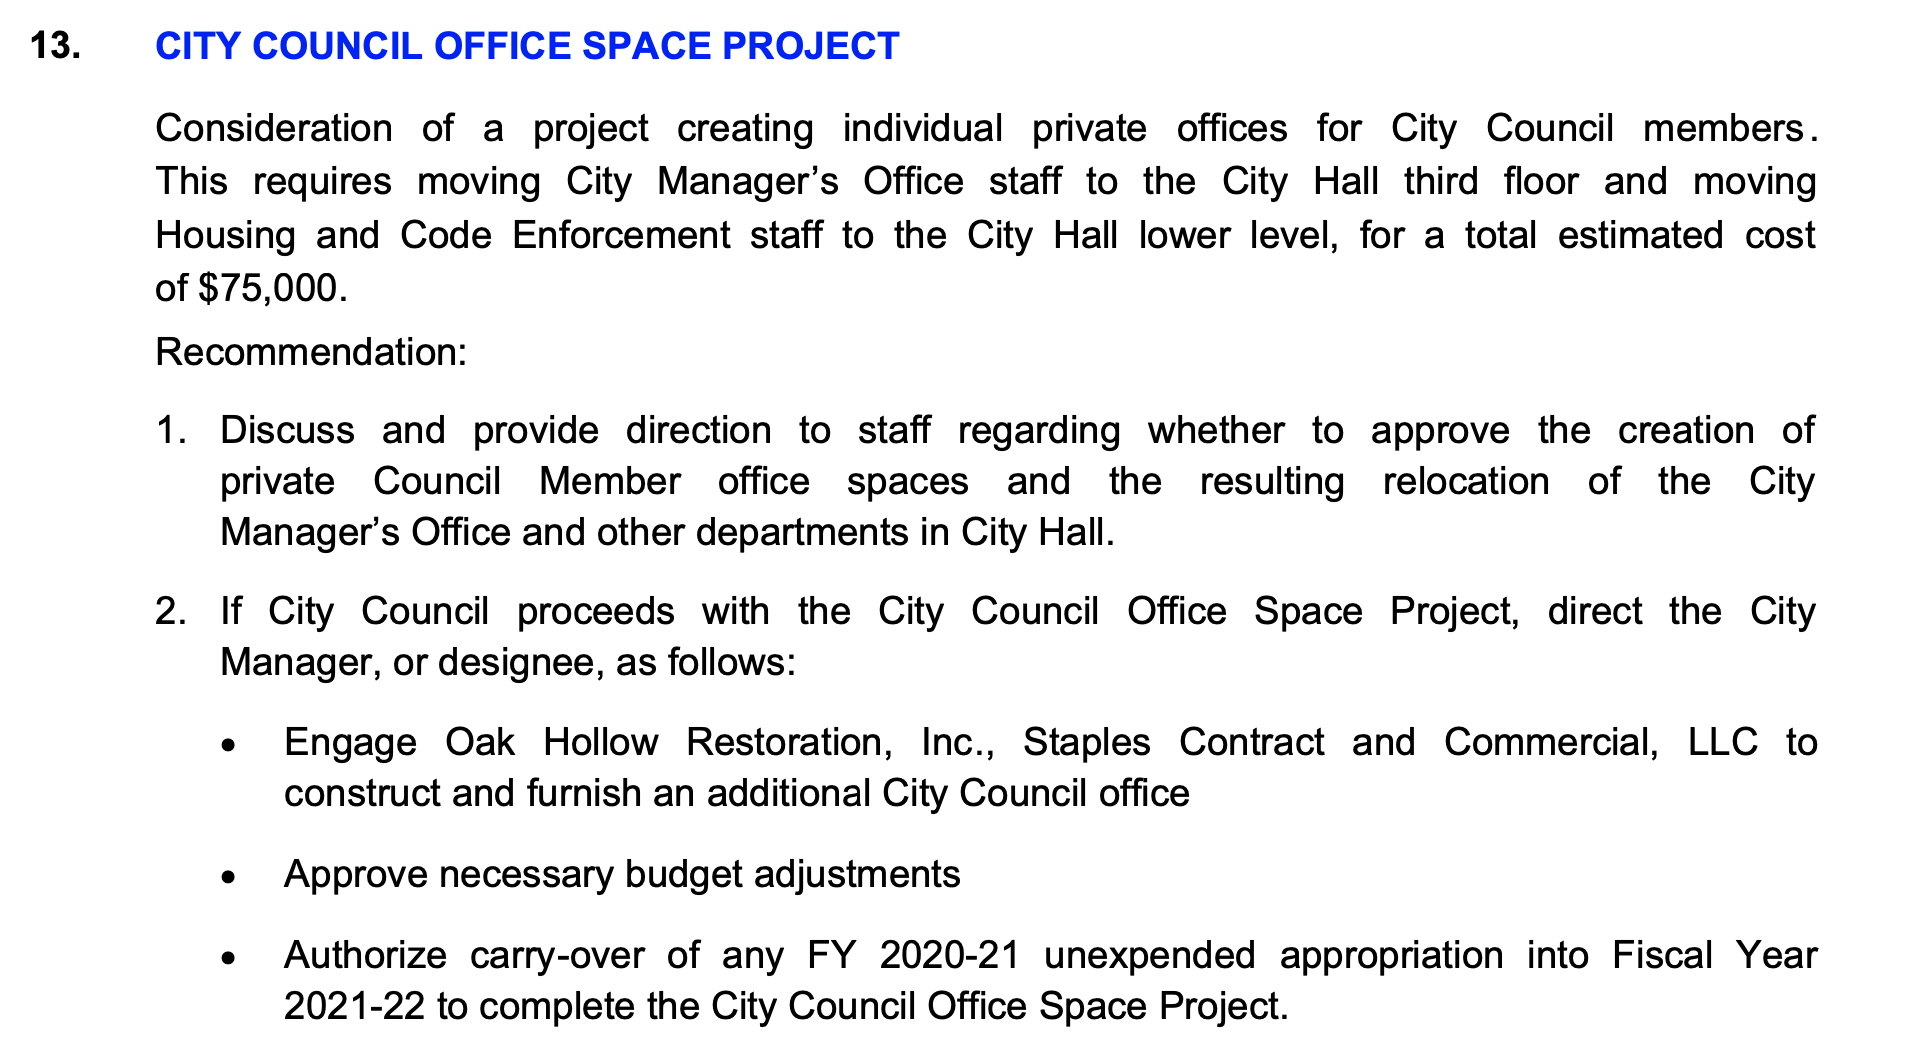 Agenda - Council Office Spave